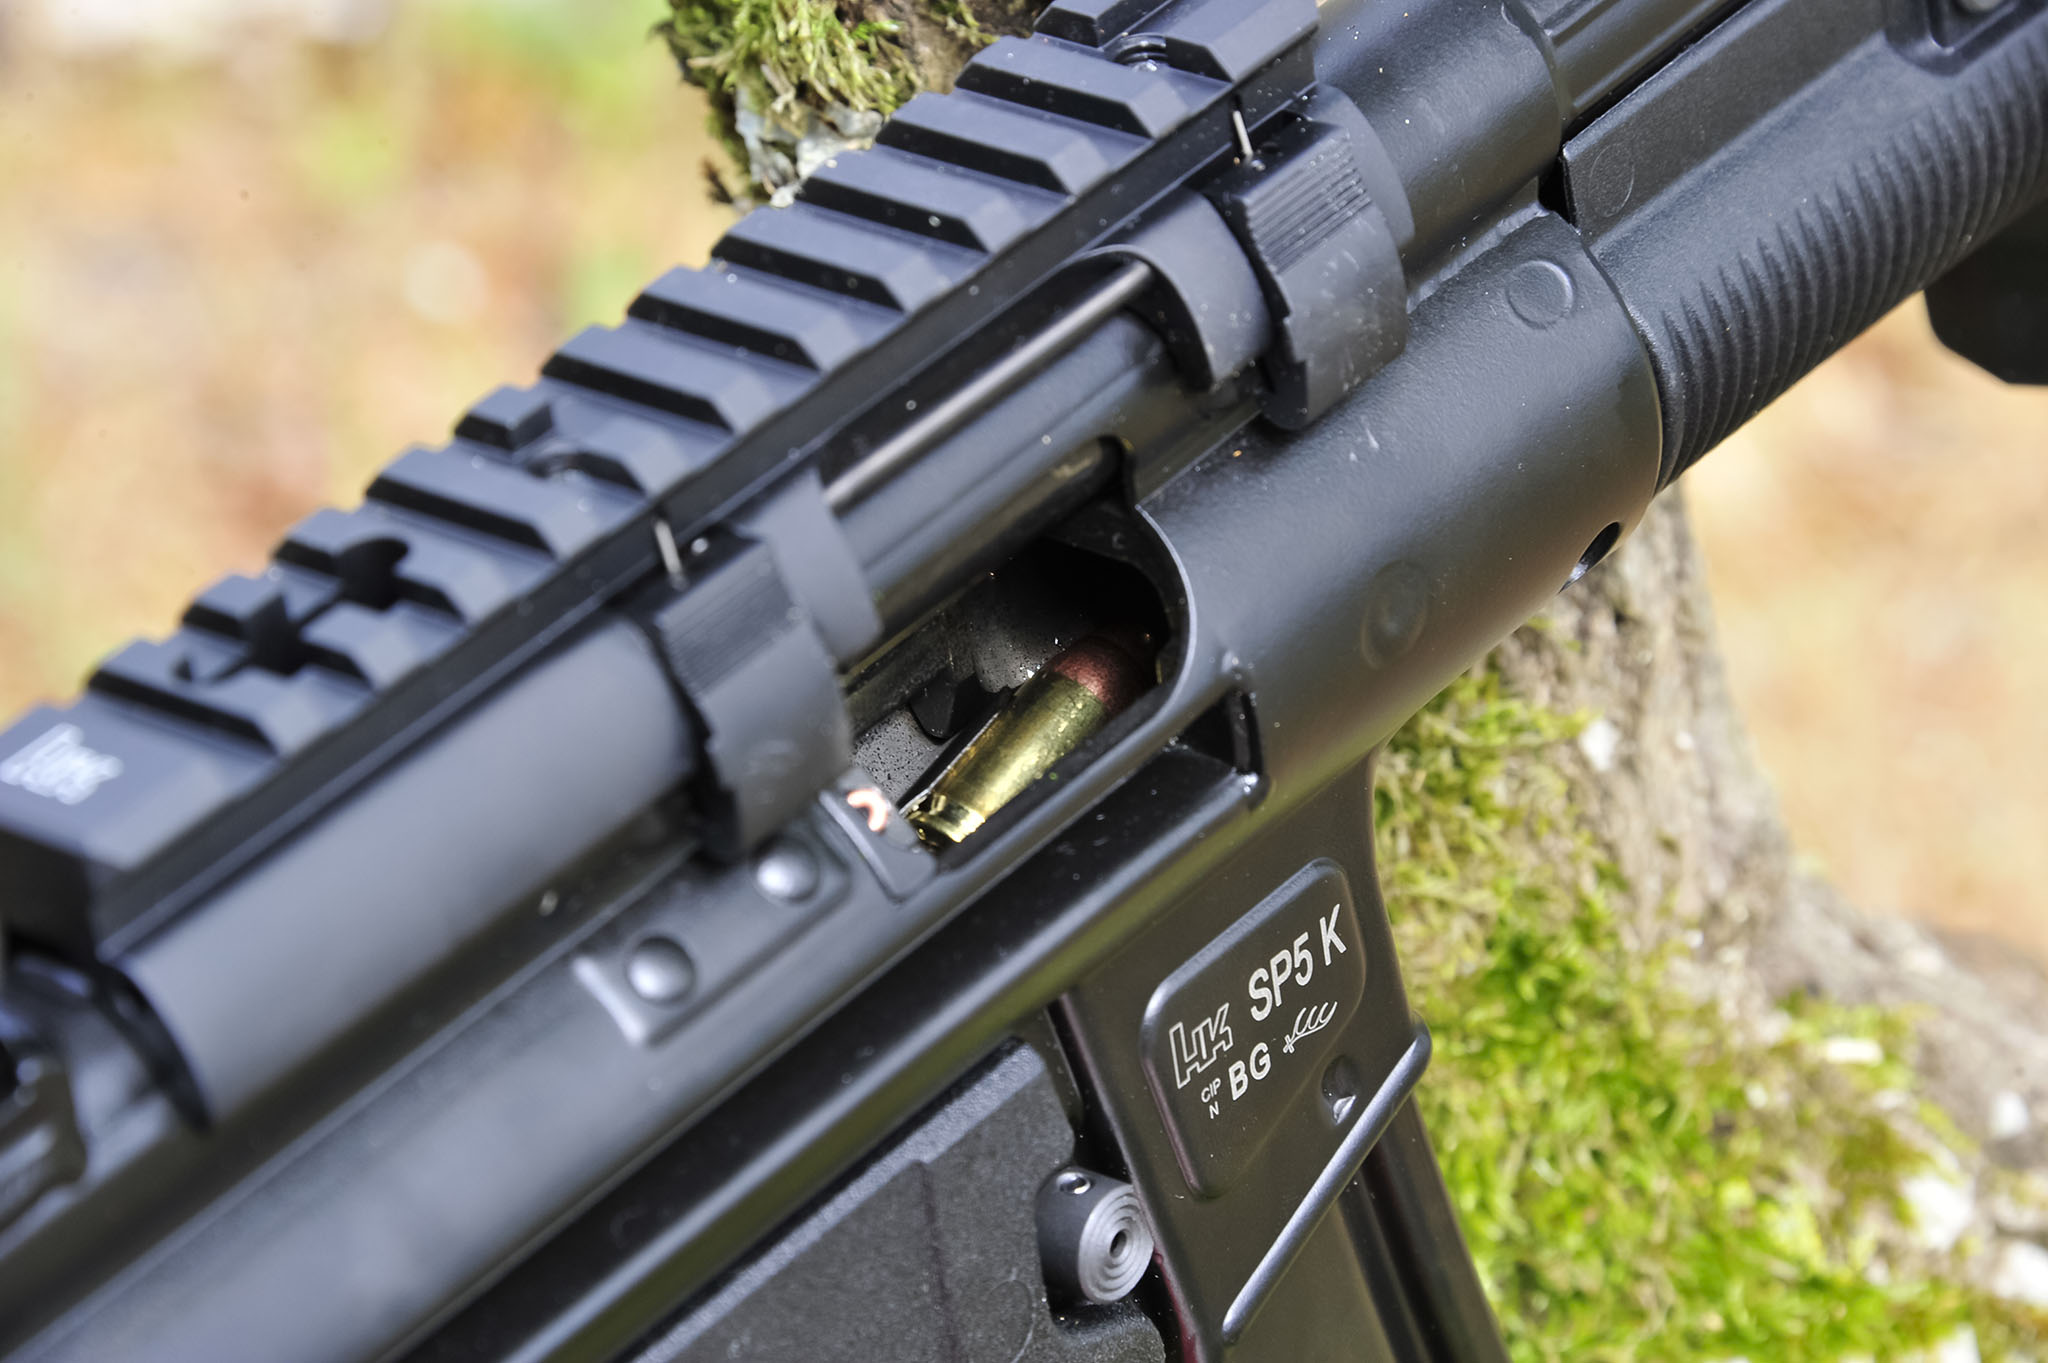 Claw-mount Picatinny optics rail mounted on a Heckler & Koch SP5K pistol